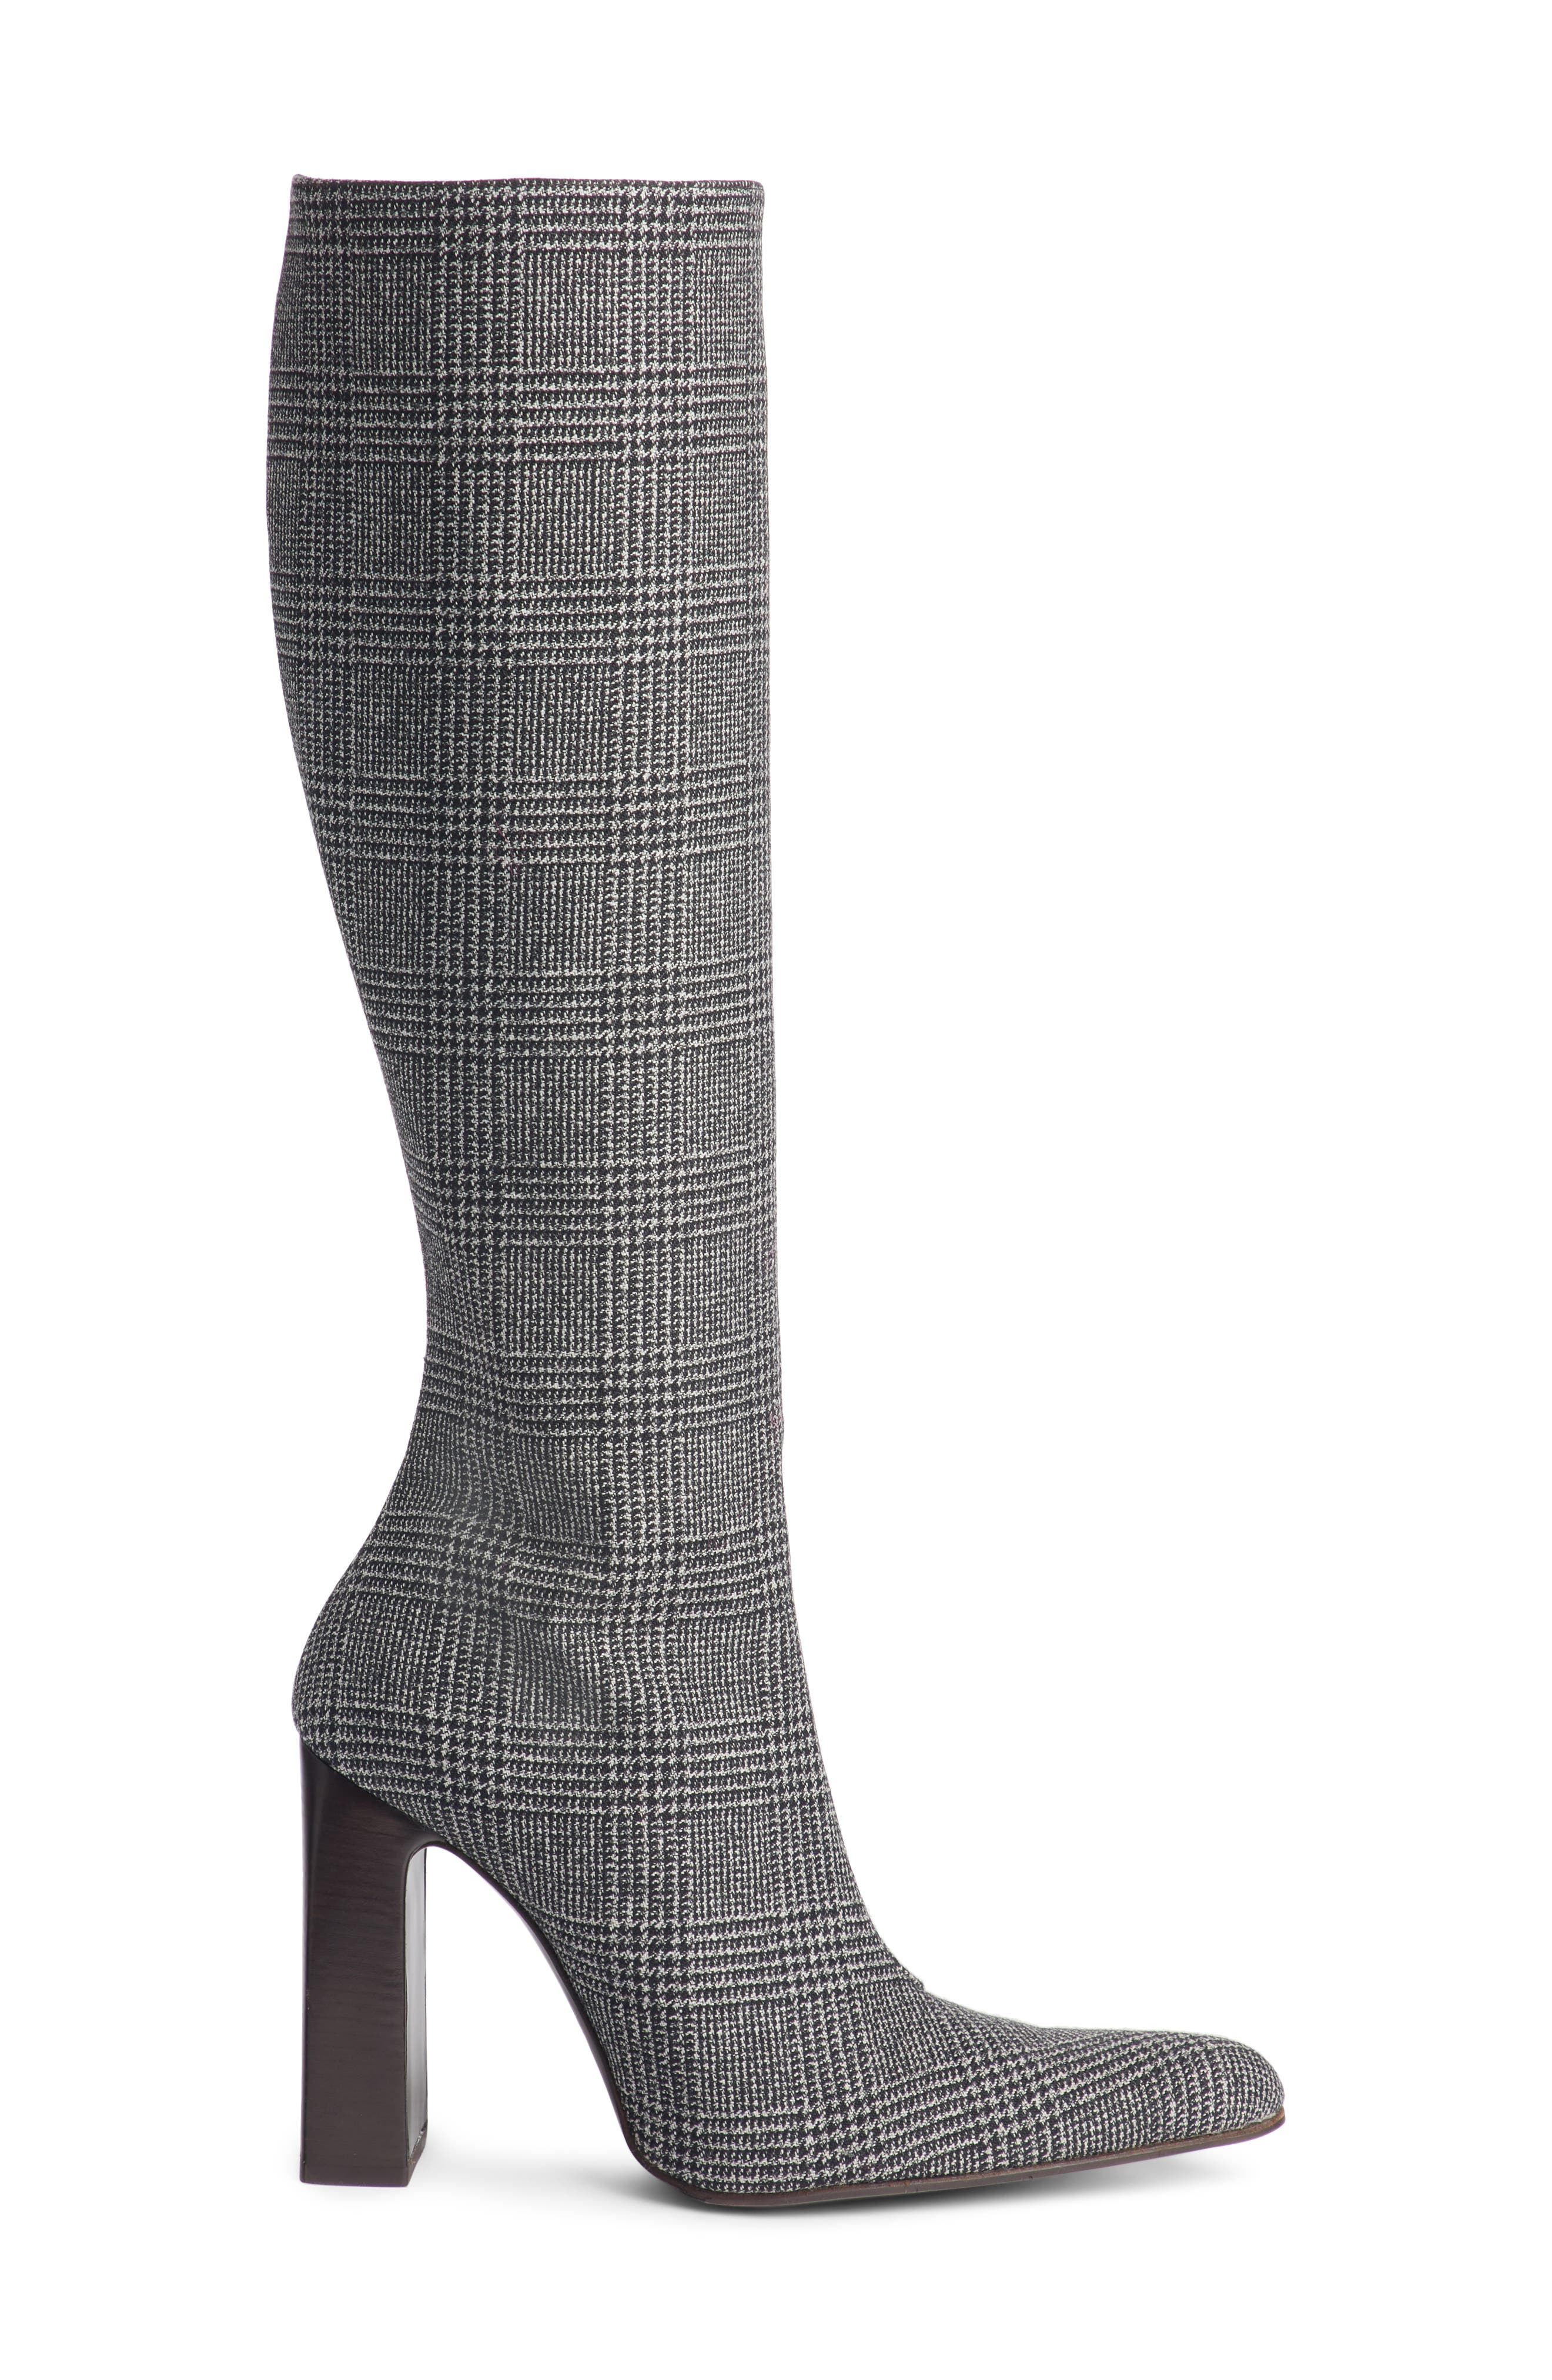 Prince of Wales Knee High Boot,                             Alternate thumbnail 3, color,                             GREY